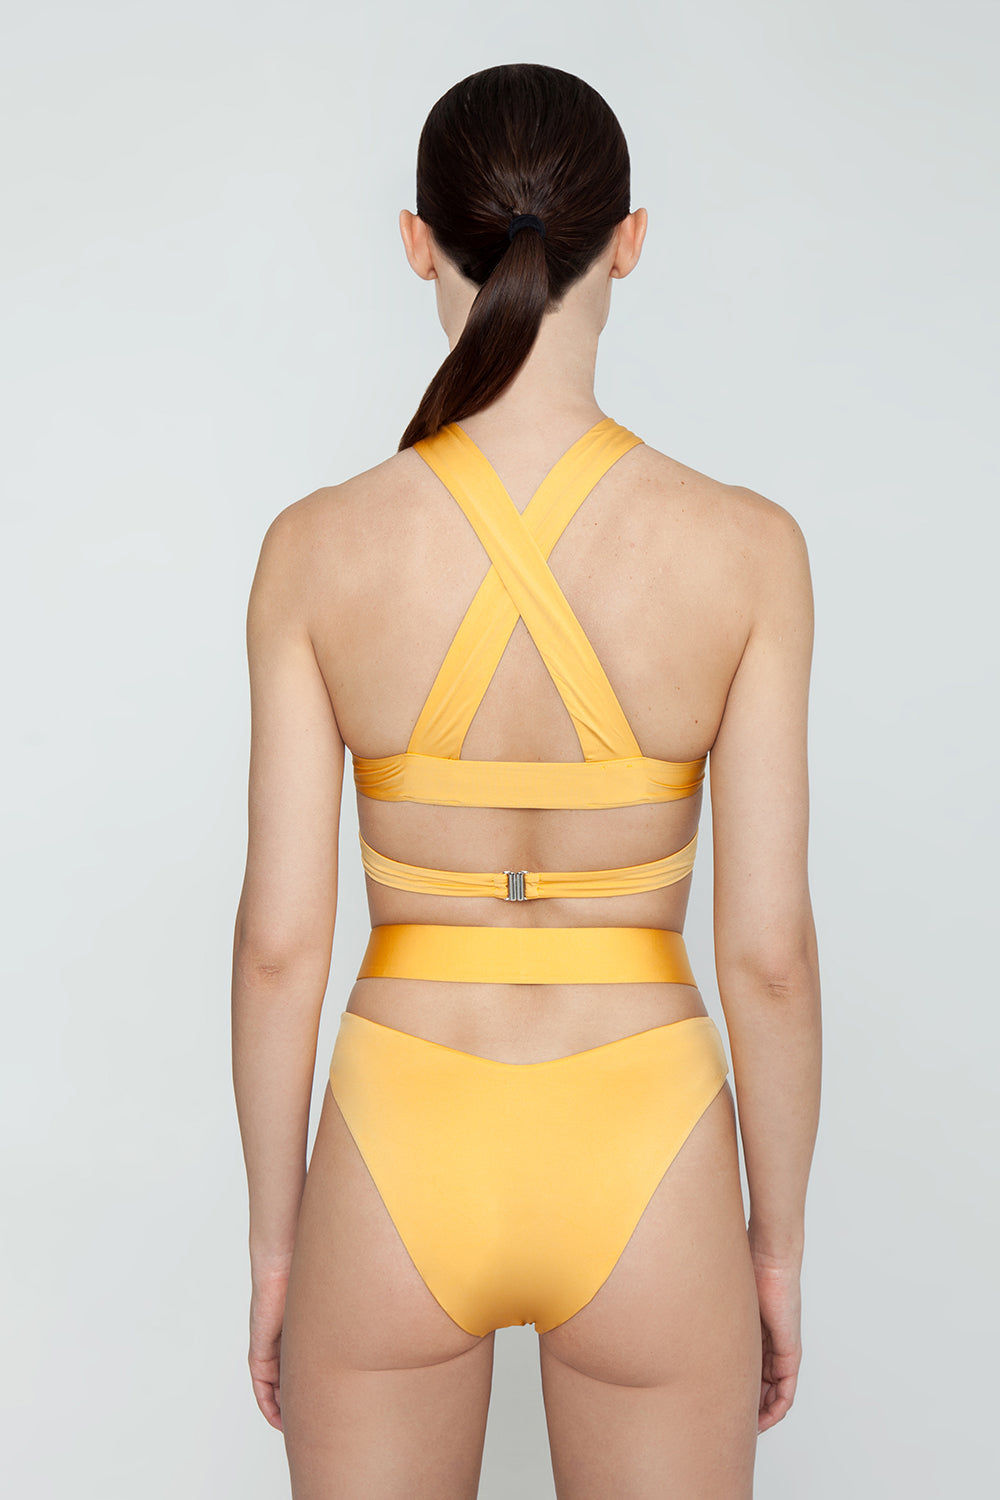 MONICA HANSEN BEACHWEAR Endless Summer Wrap Around Bikini Bottom - Honey Bikini Bottom | Honey| Monica Hansen Beachwear Endless Summer Wrap Around Bikini Bottom - Honey. Forms a diamond cut out in front Criss cross straps  High cut leg  Cheeky coverage  Double fabric on the inside instead of lining Italian fabric 85% Nylon 15% Elastane Manufactured in Italy Hand wash cold.  Dry Flat Back View